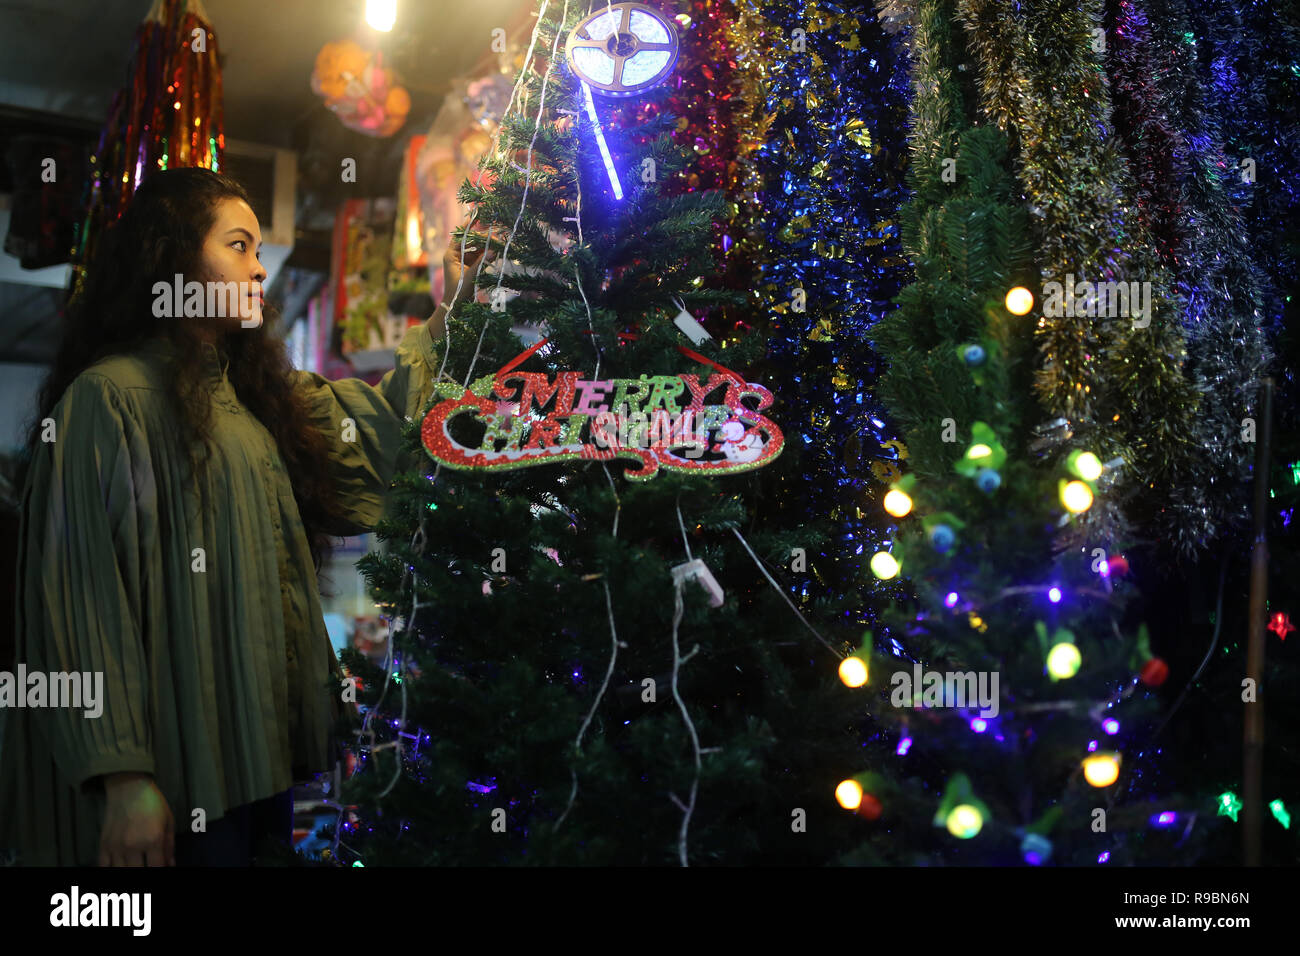 Vu fille shopping de Noël dans un magasin avant de vacances de Noël à Dhaka, Bangladesh, le 20 décembre 2018. Photo Stock